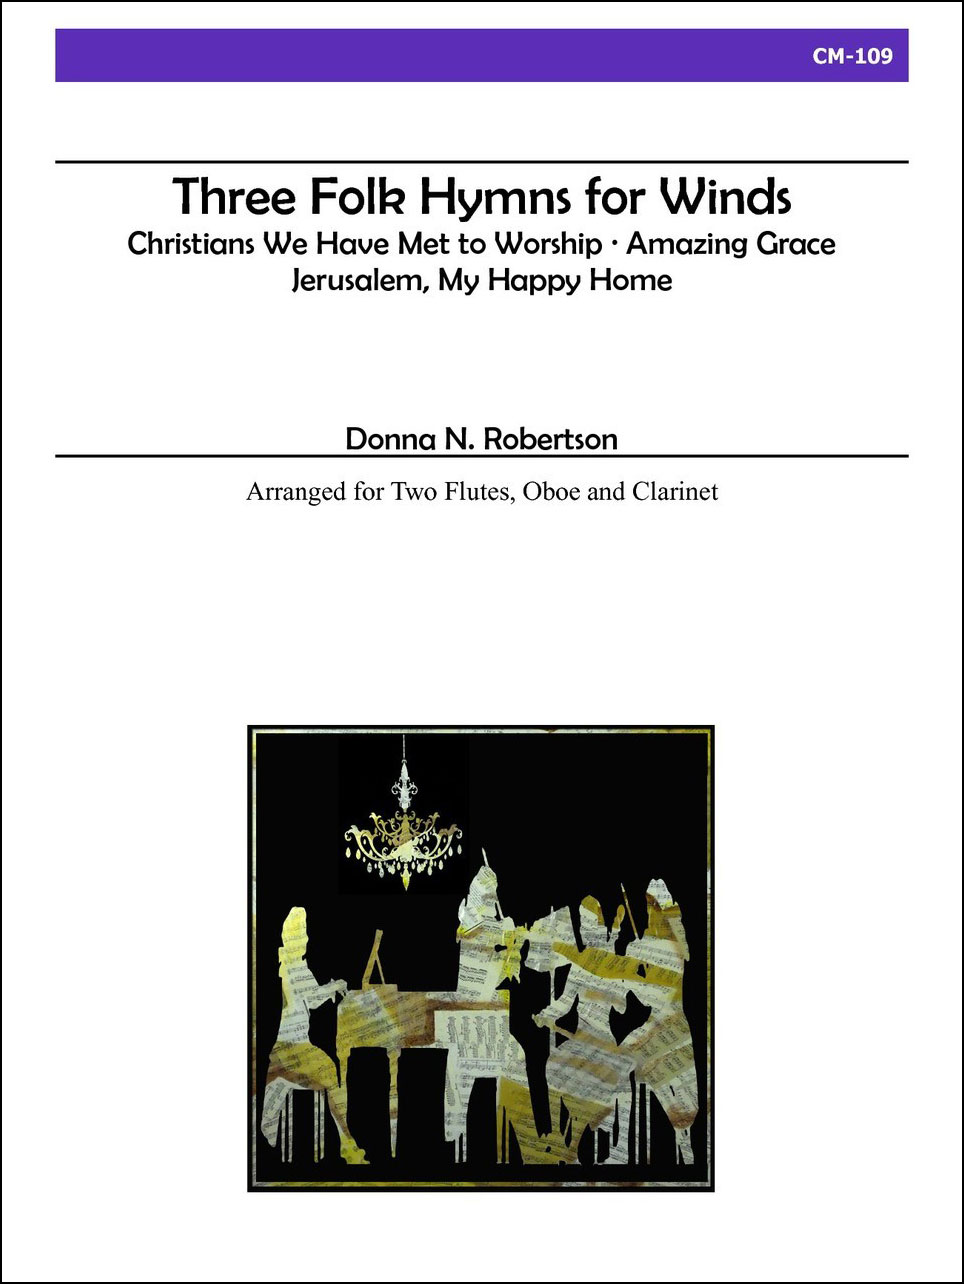 Three Folk Hymns for Winds